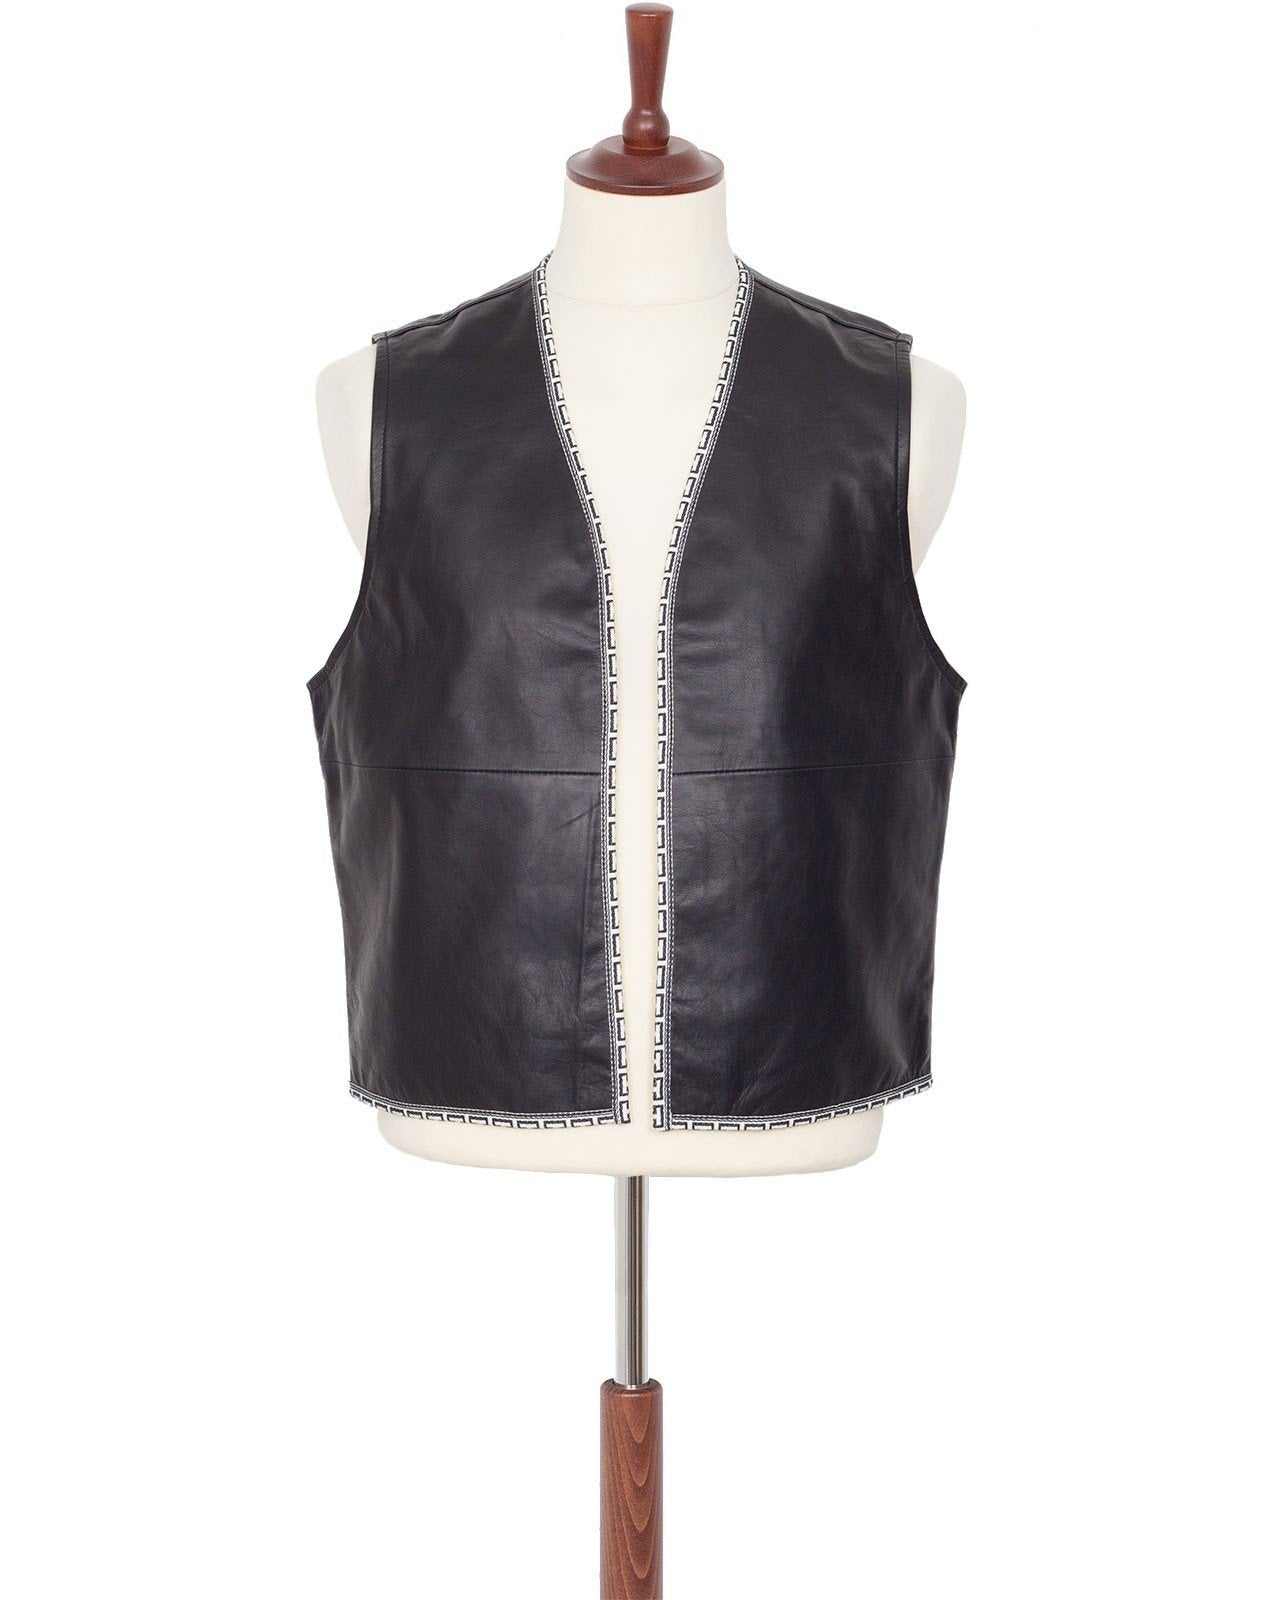 Indigofera Spawinaw Leather Vest